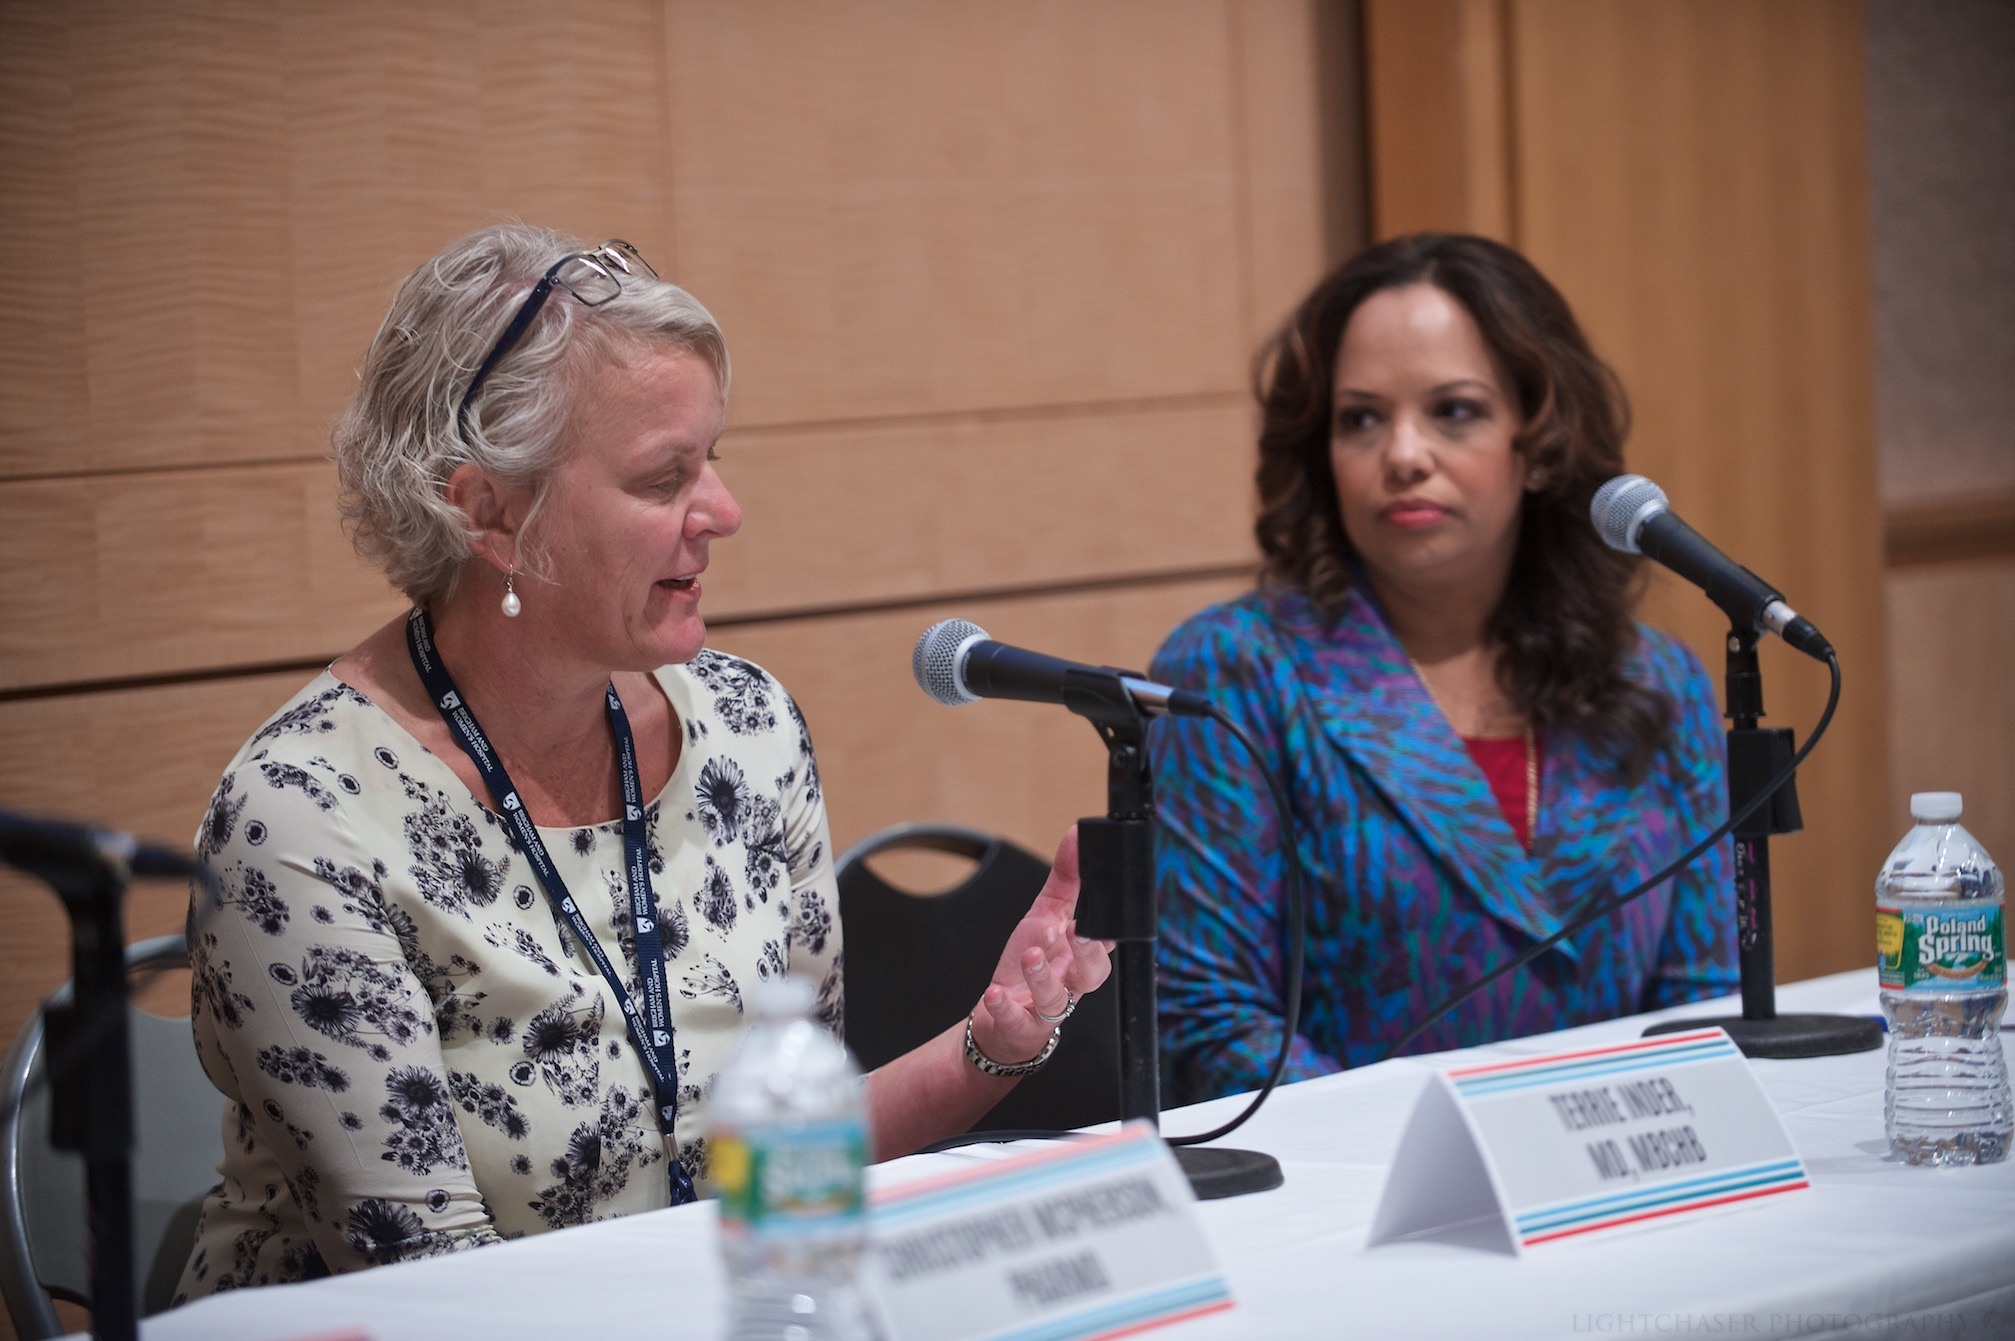 Terrie Inder (left) and moderator Mallika Marshall